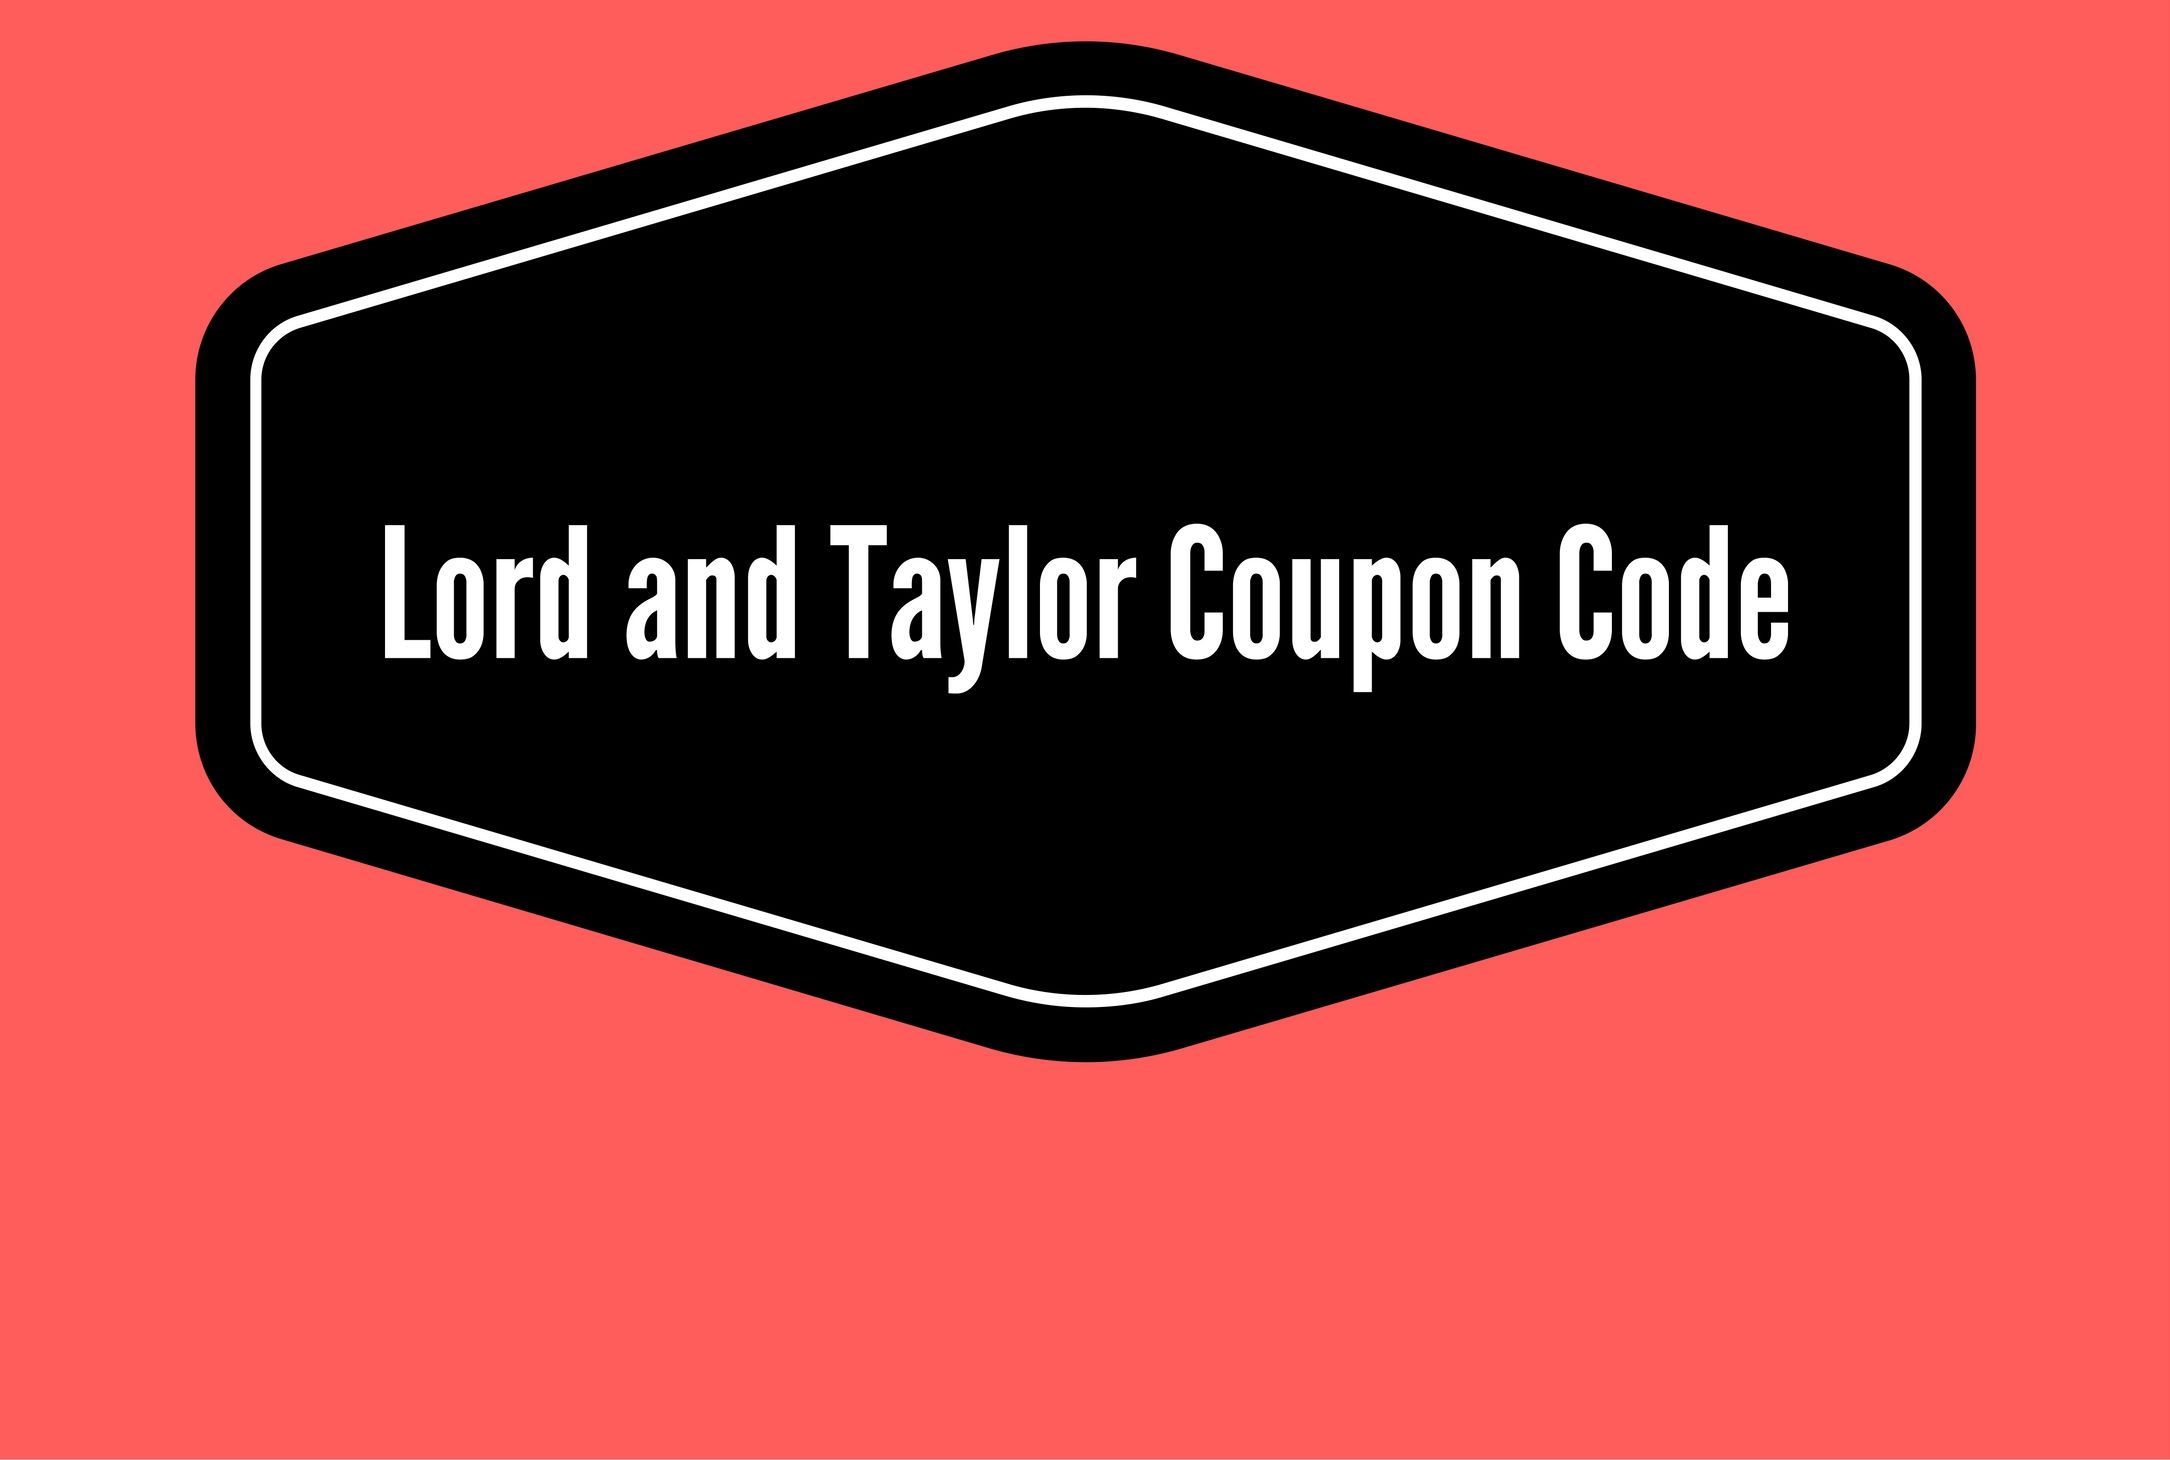 Get Lord And Taylor Coupon Code Promo Code Voucher Code Special Discount Offer And Best Deals Online Coupons Codes Carols Daughter Products City Chic Online